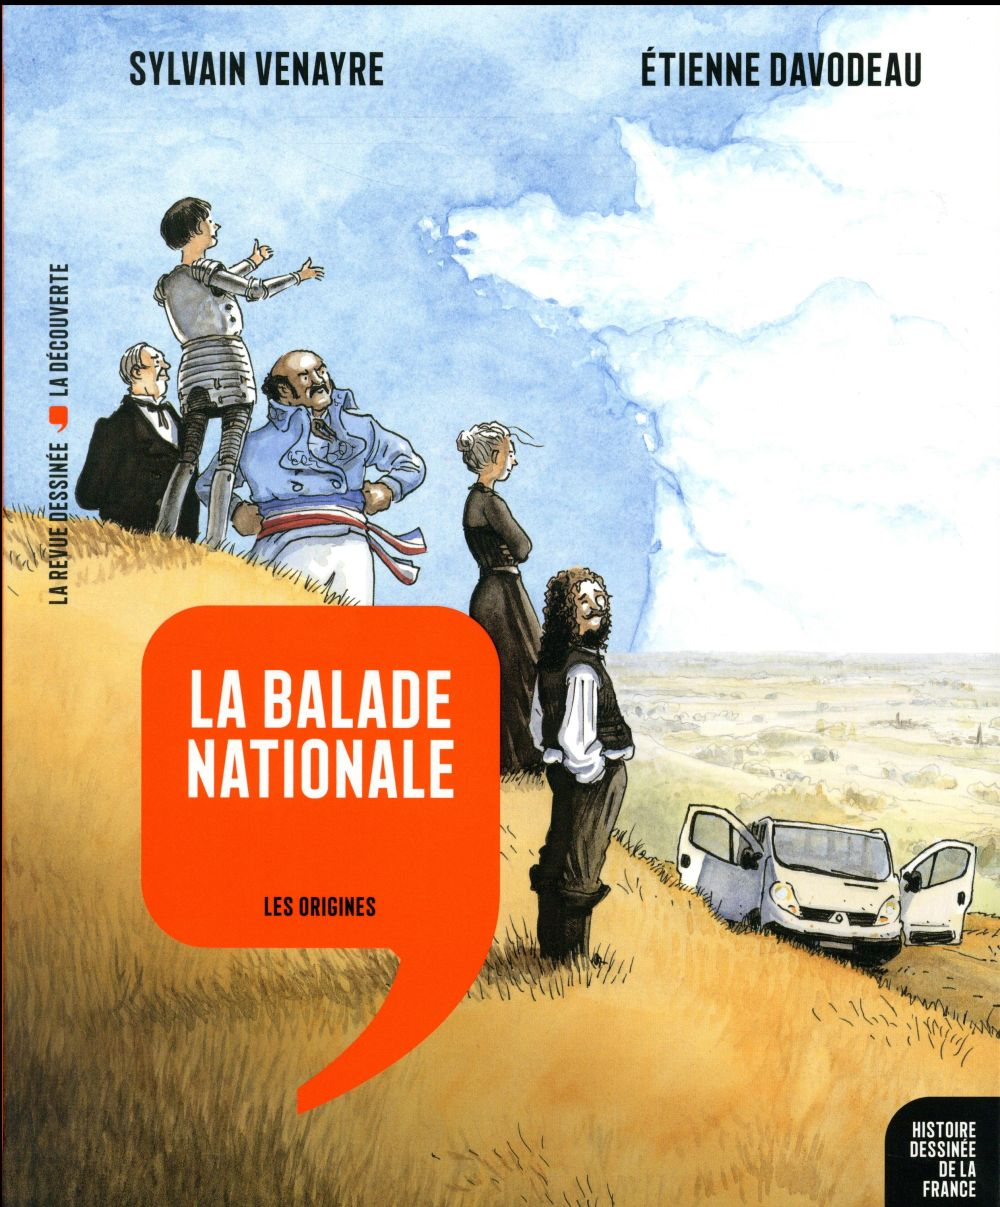 HISTOIRE DESSINEE DE LA FRANCE - 1 - LA BALADE NATIONALE - LES ORIGINES